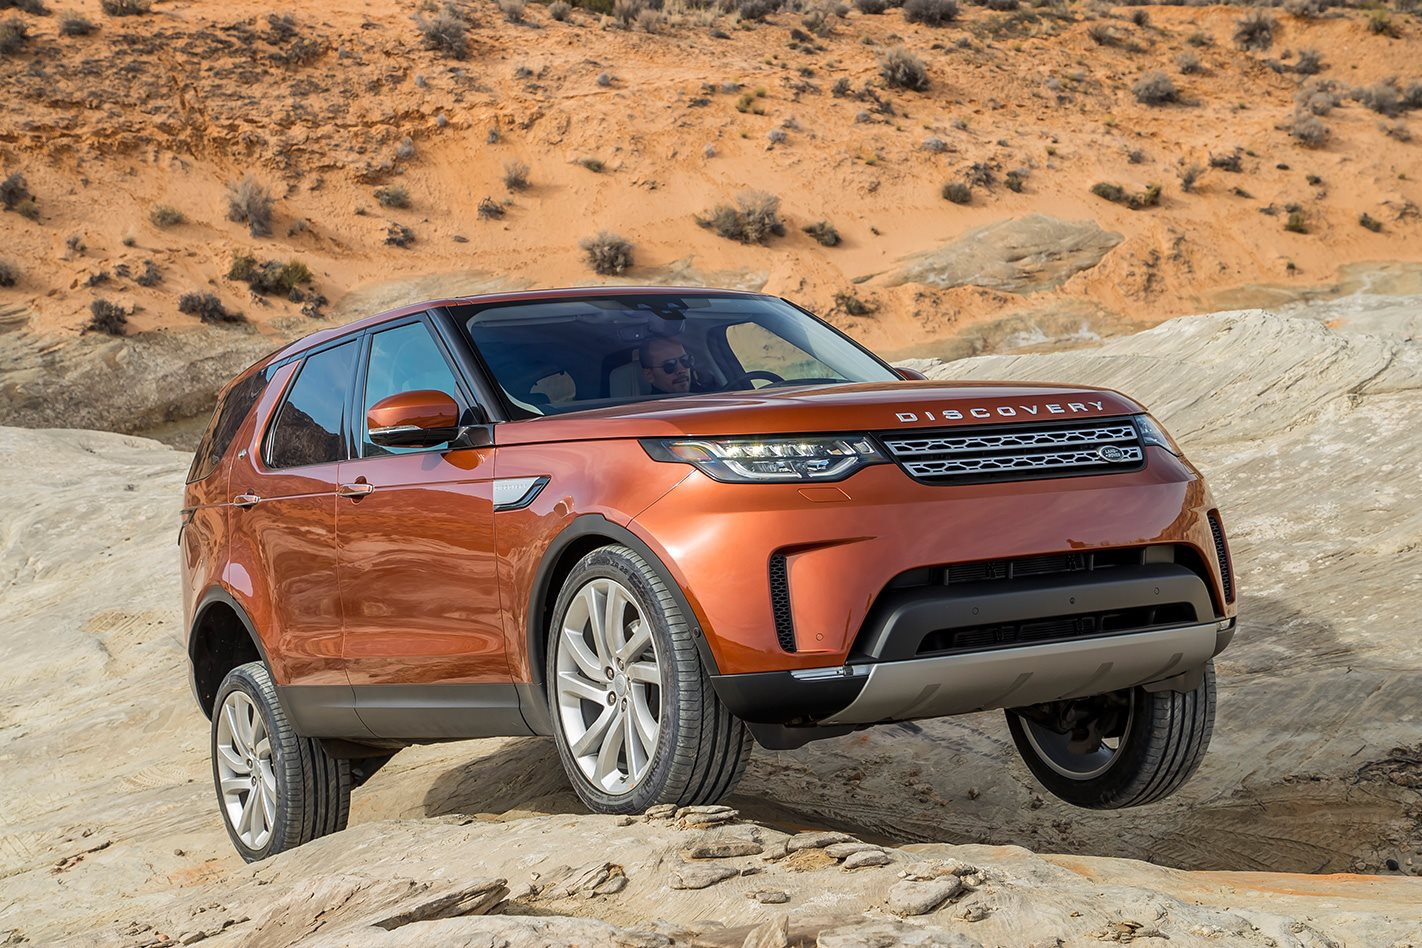 2017 land rover discovery review first drive 4x4 australia. Black Bedroom Furniture Sets. Home Design Ideas